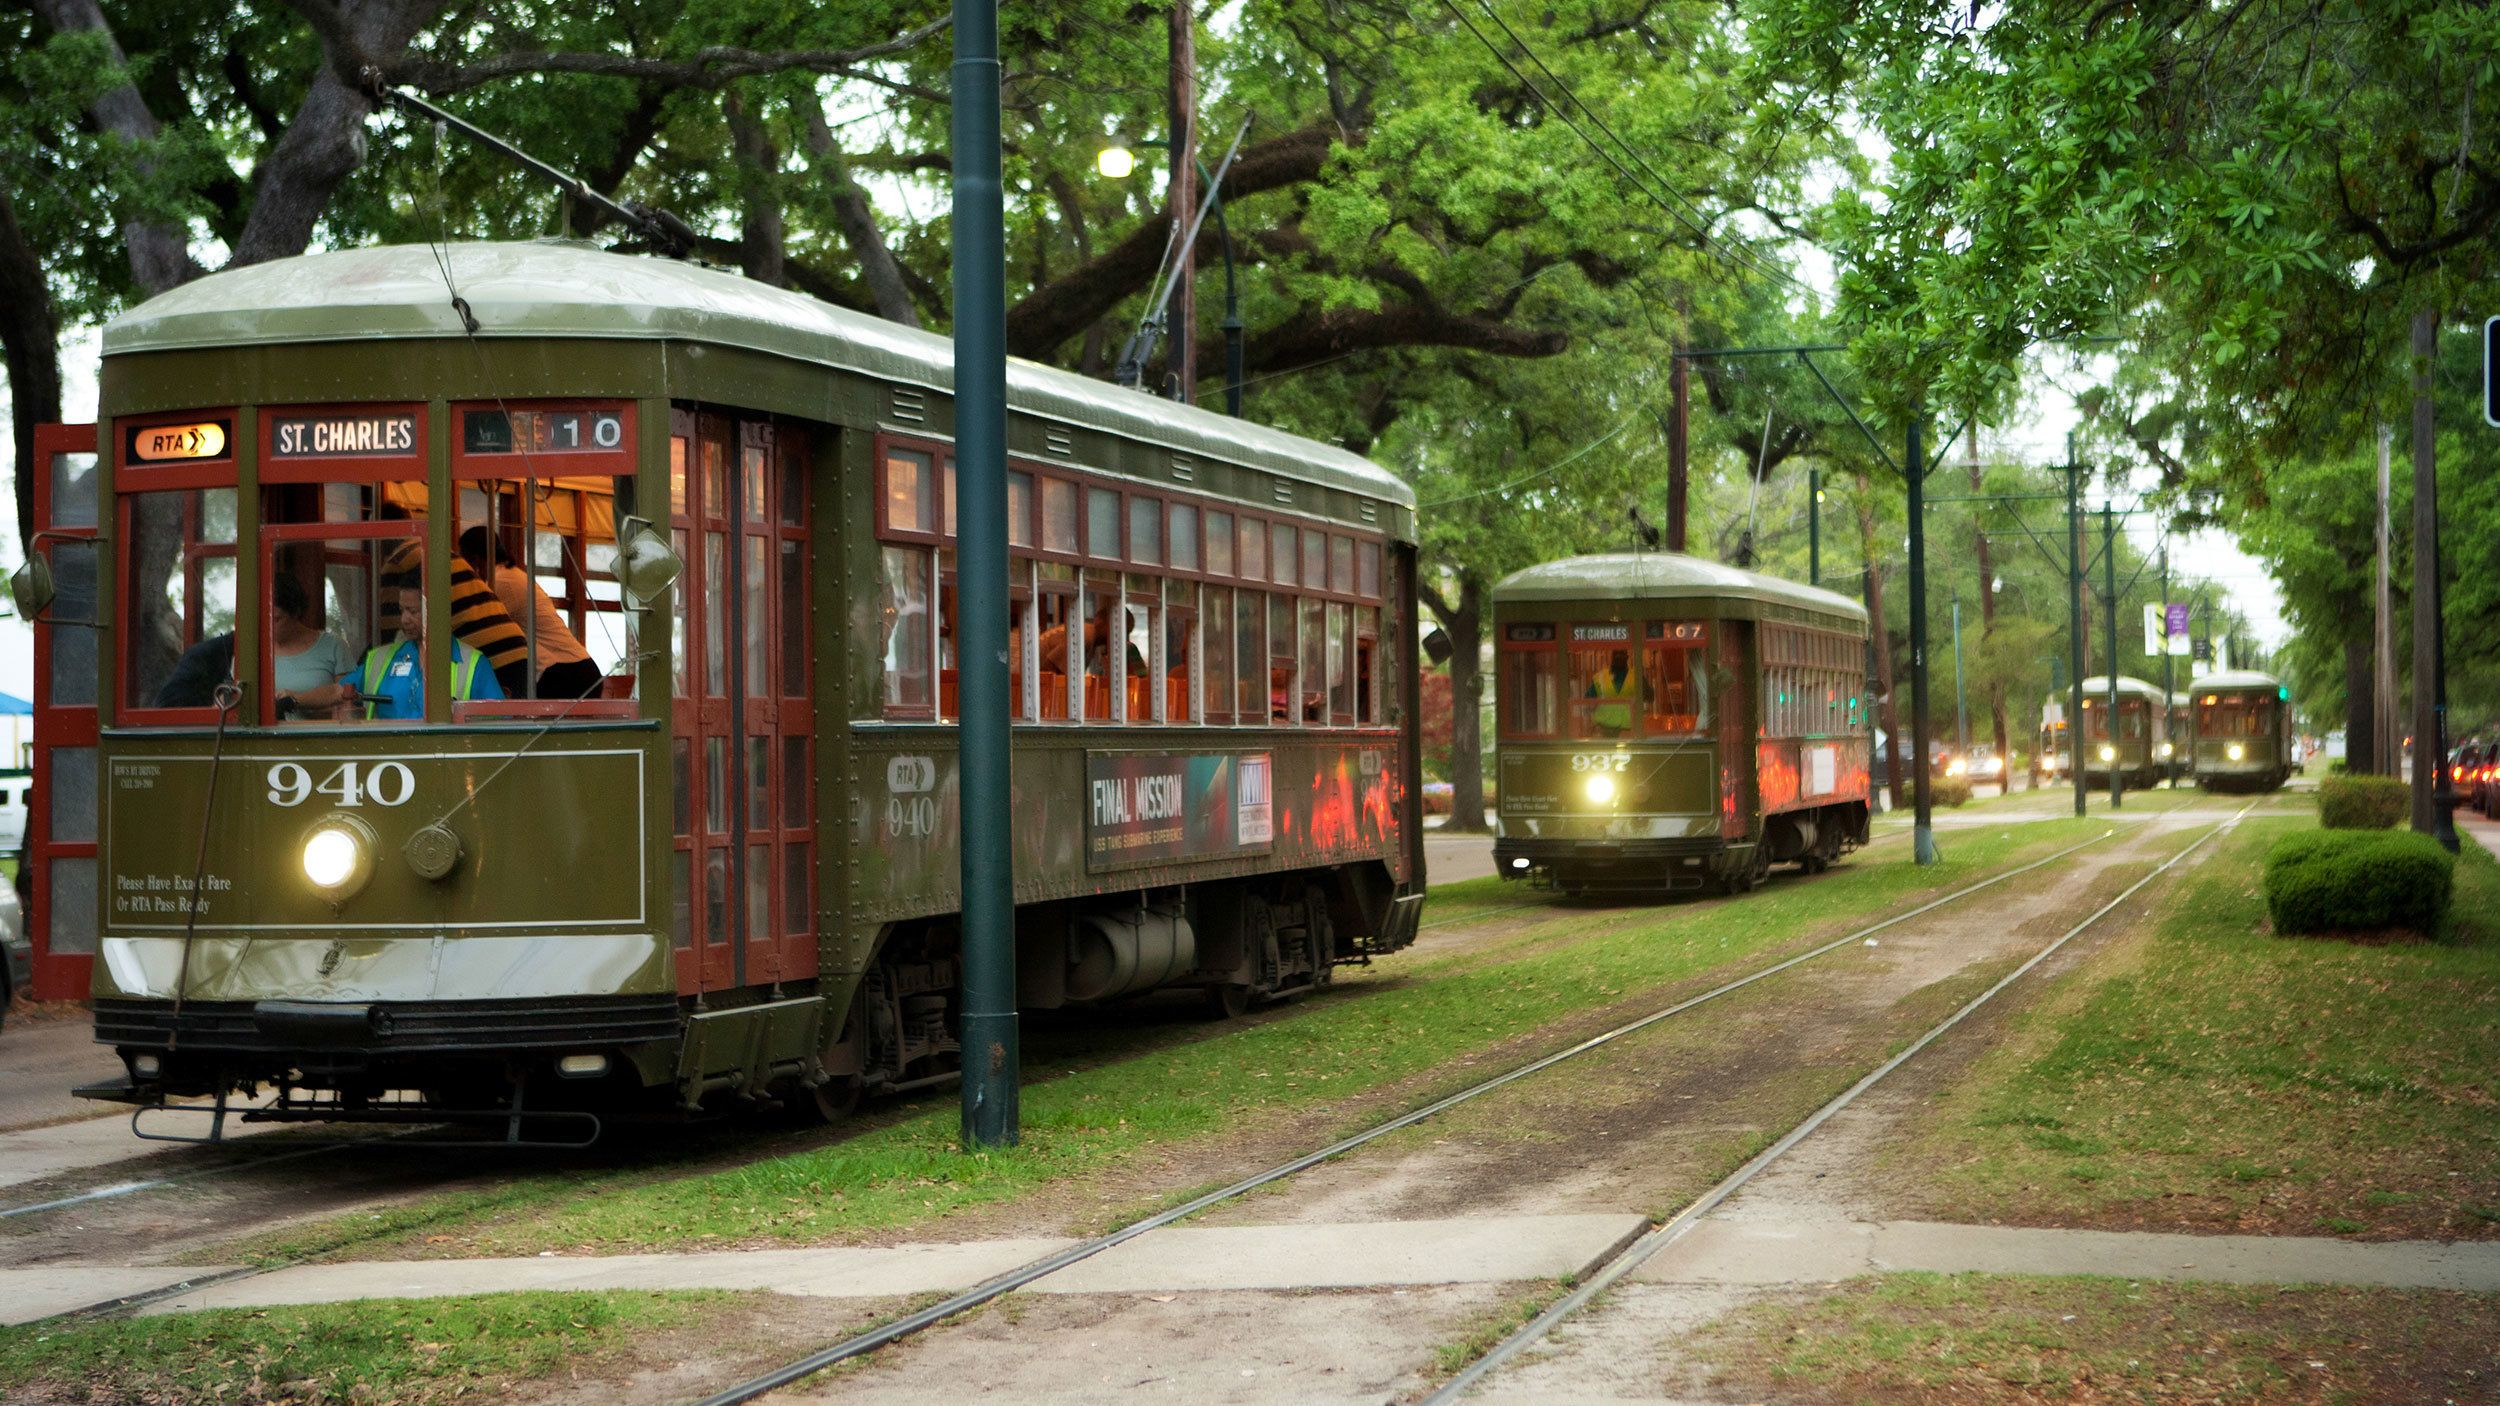 trolley cars on city streets in New Orleans